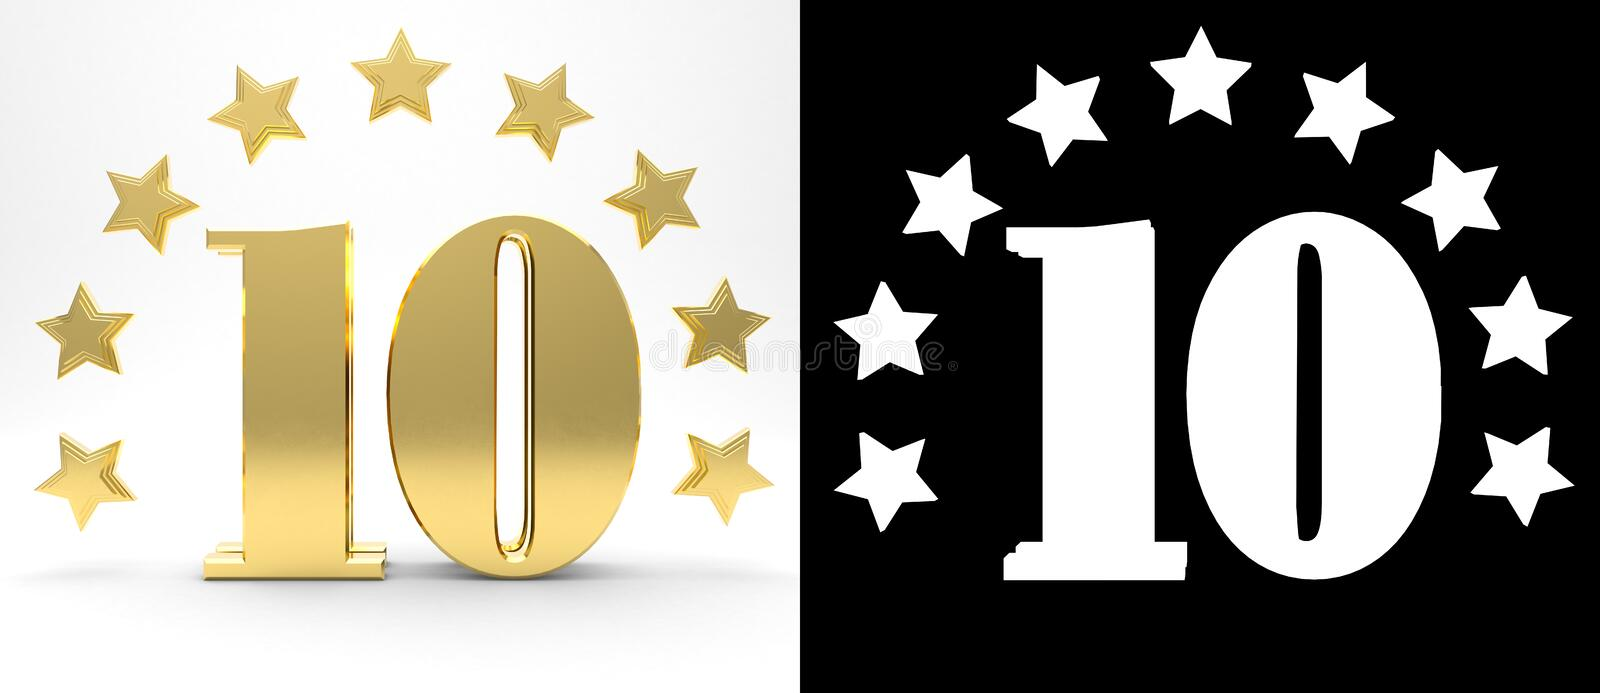 Golden number ten on white background with drop shadow and alpha channel , decorated with a circle of stars. 3D illustration royalty free illustration